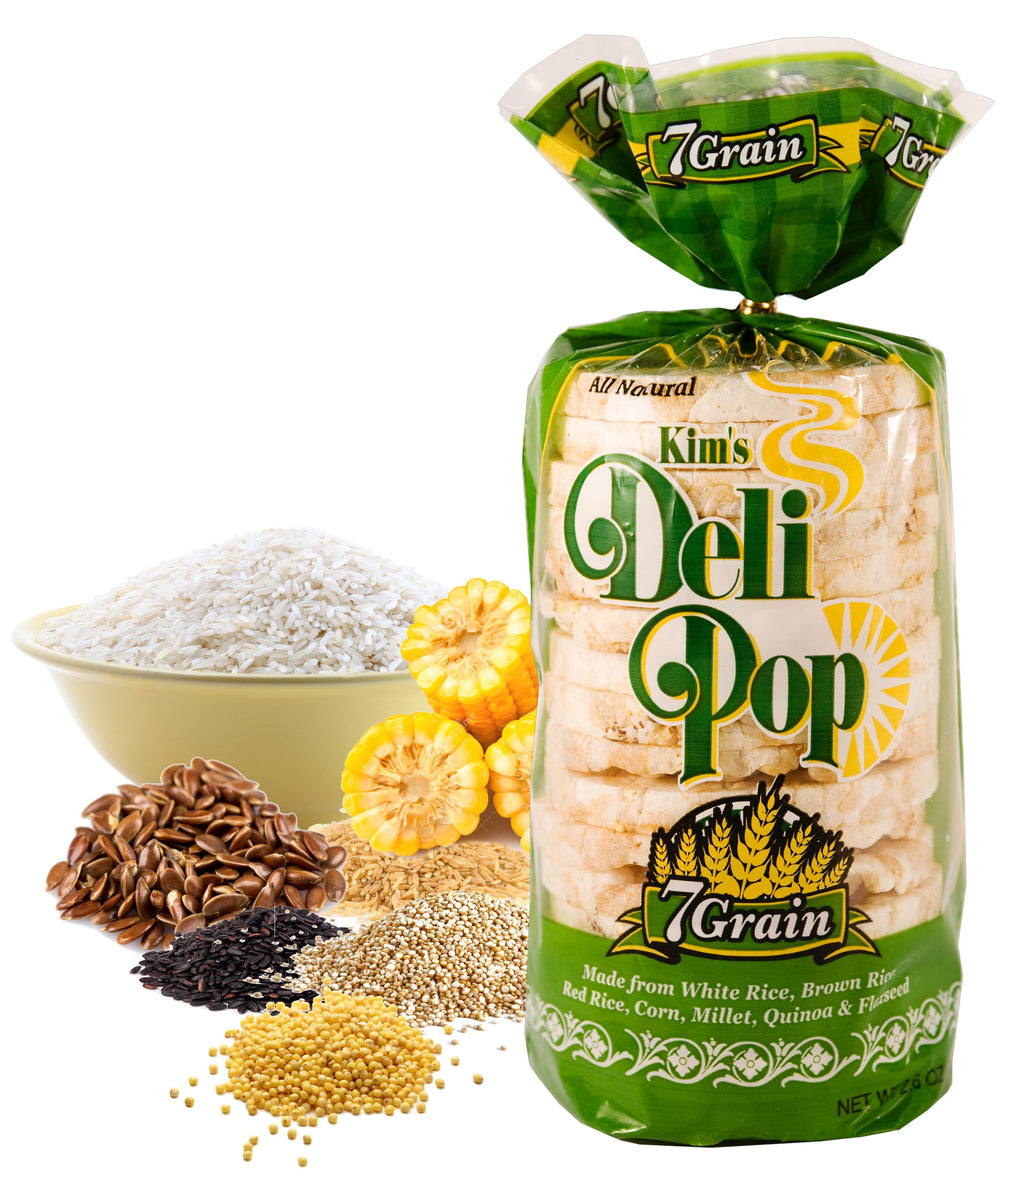 KIM'S MAGIC POP Deli Pop 7-Grain Flavor (Gluten Free)